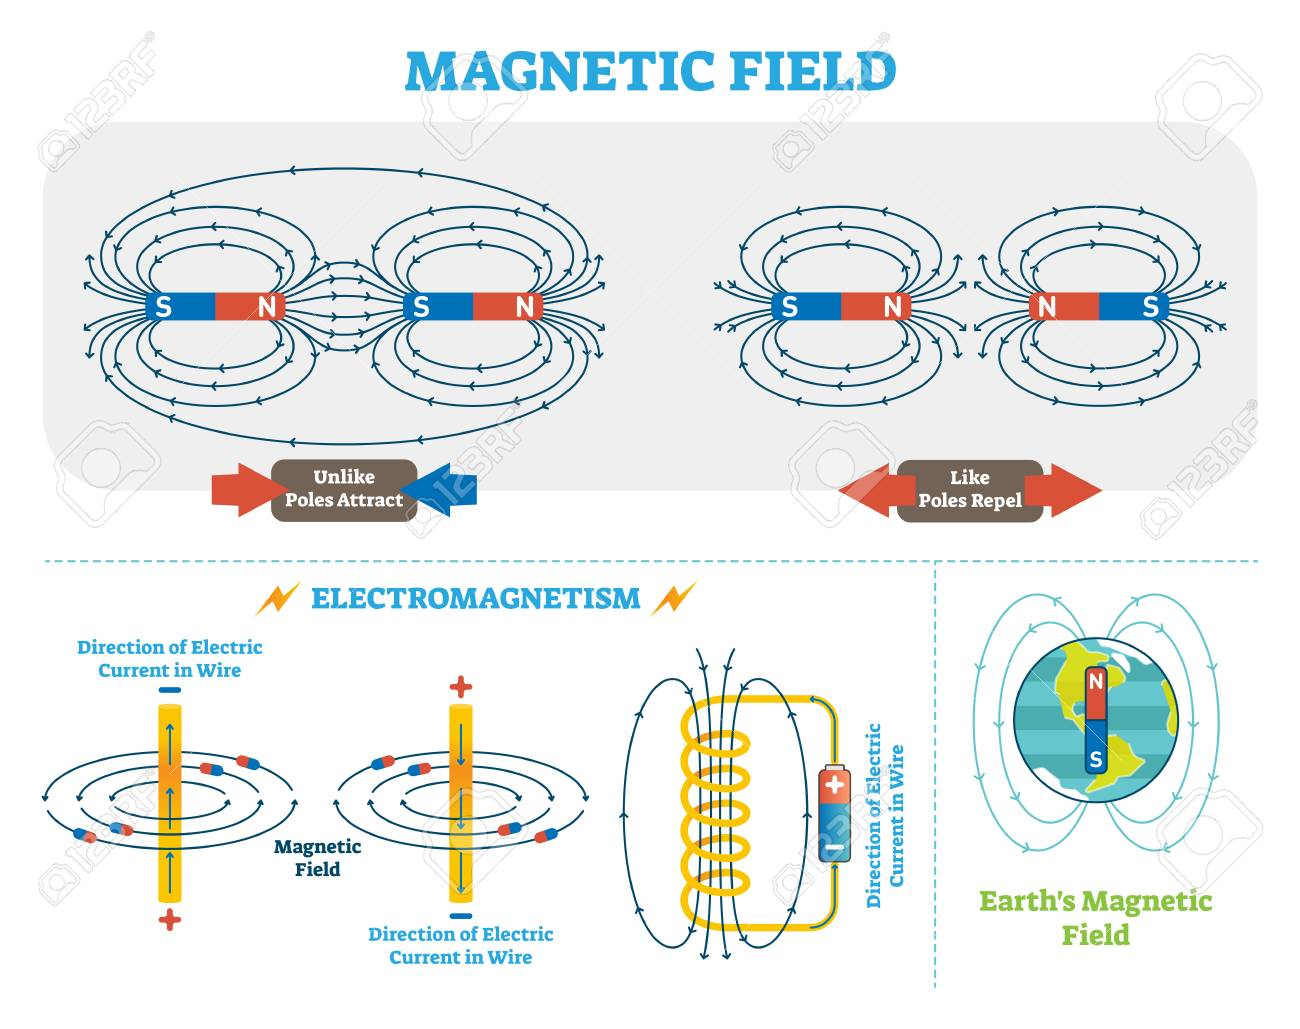 Scientific Magnetic Field and Electromagnetism illustration scheme. - 97416869